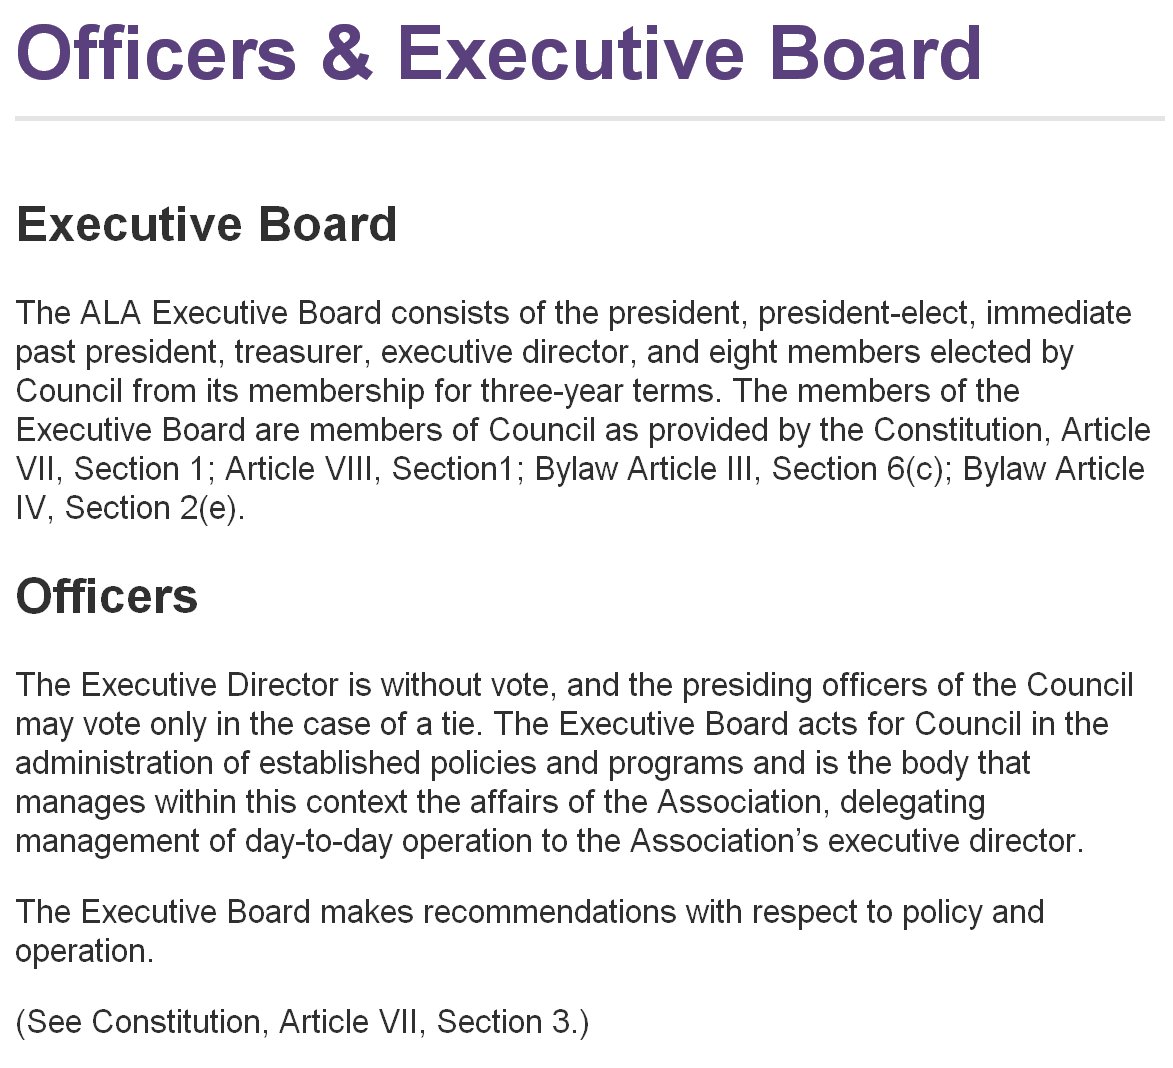 Officers and Executive Board landing page showing headings and paragraph styling.